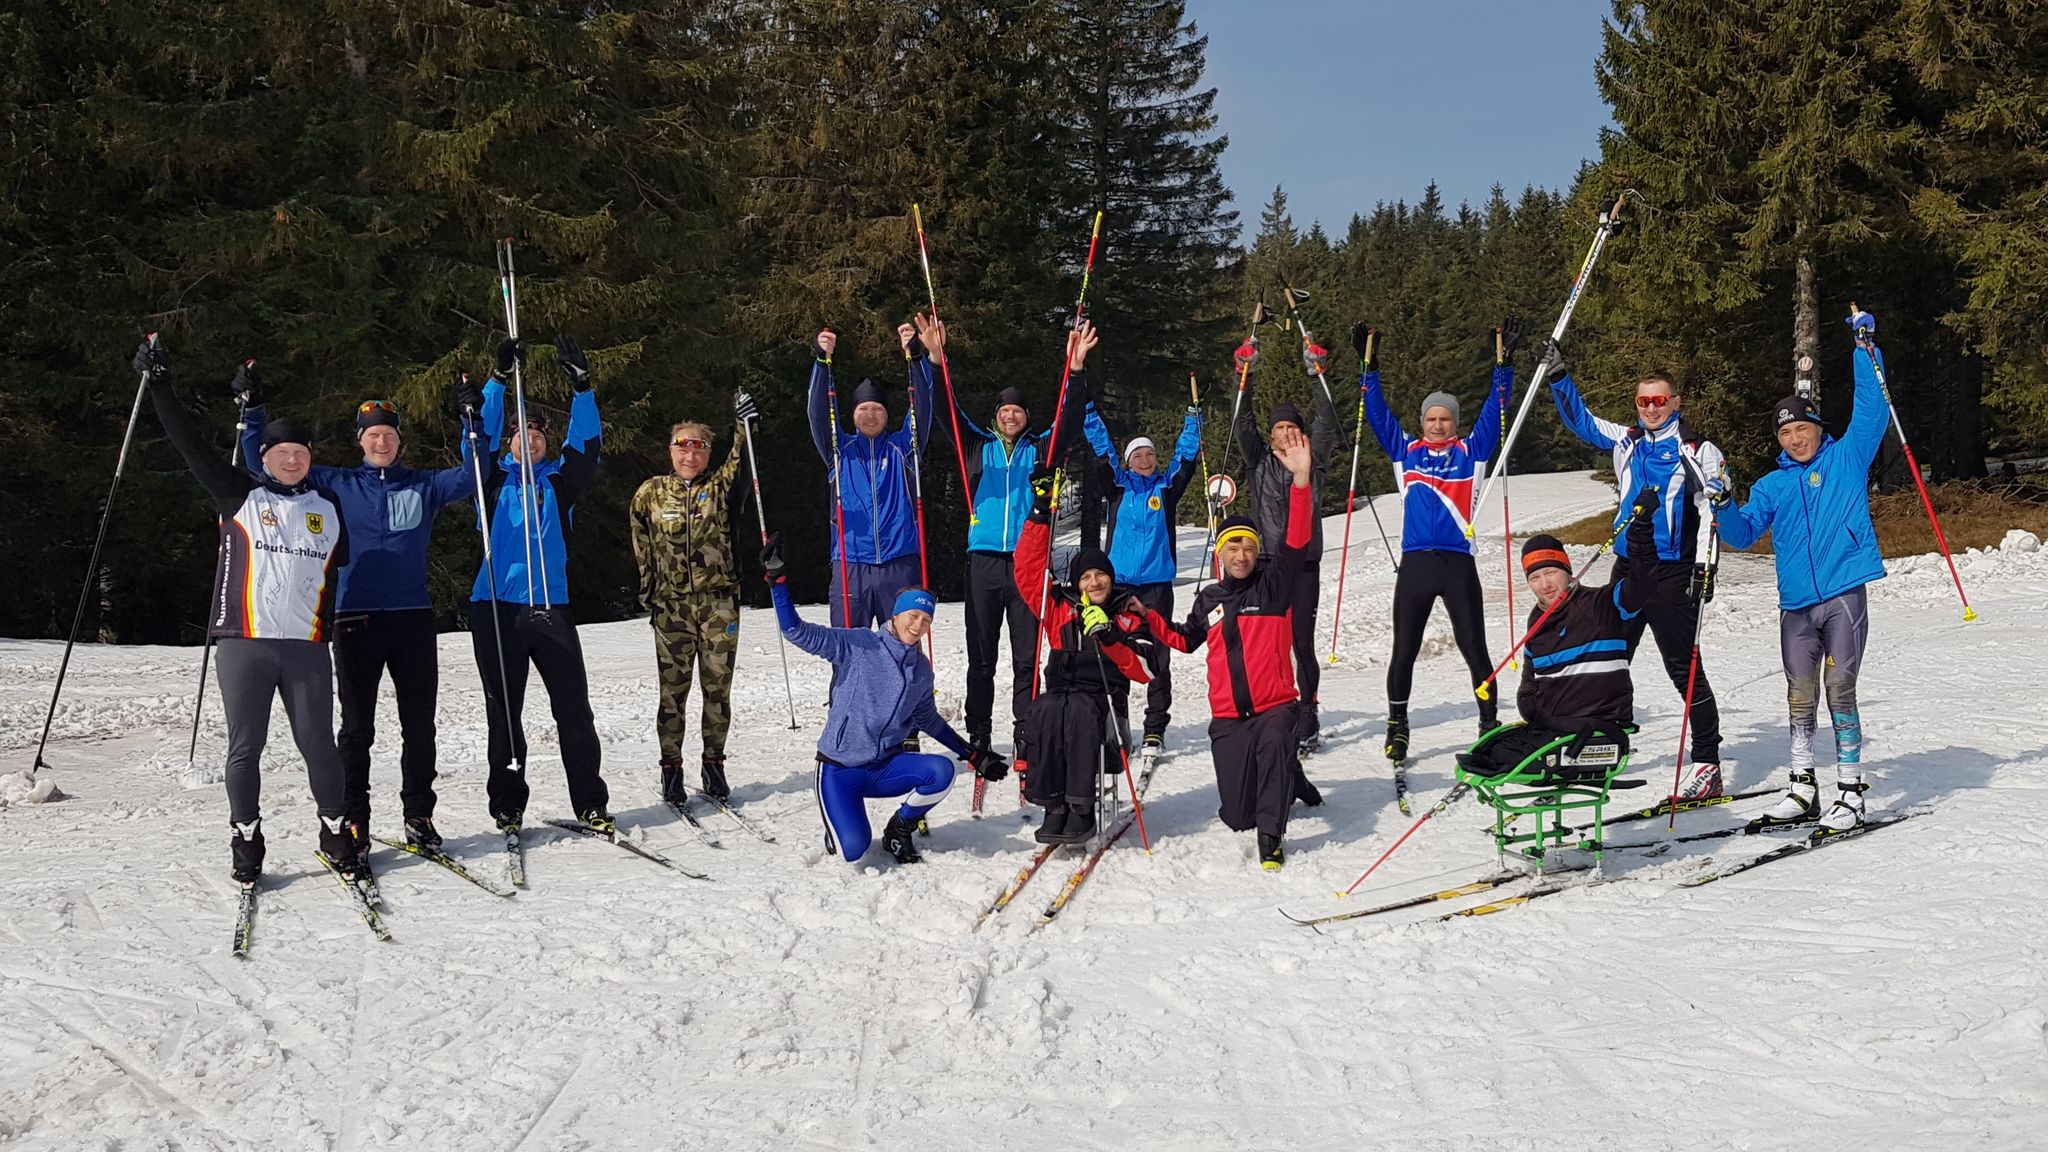 Cross Country Skiing At The 2020 Winter Olympics.Save The Date For The 2nd Cism International Training Camp 2020